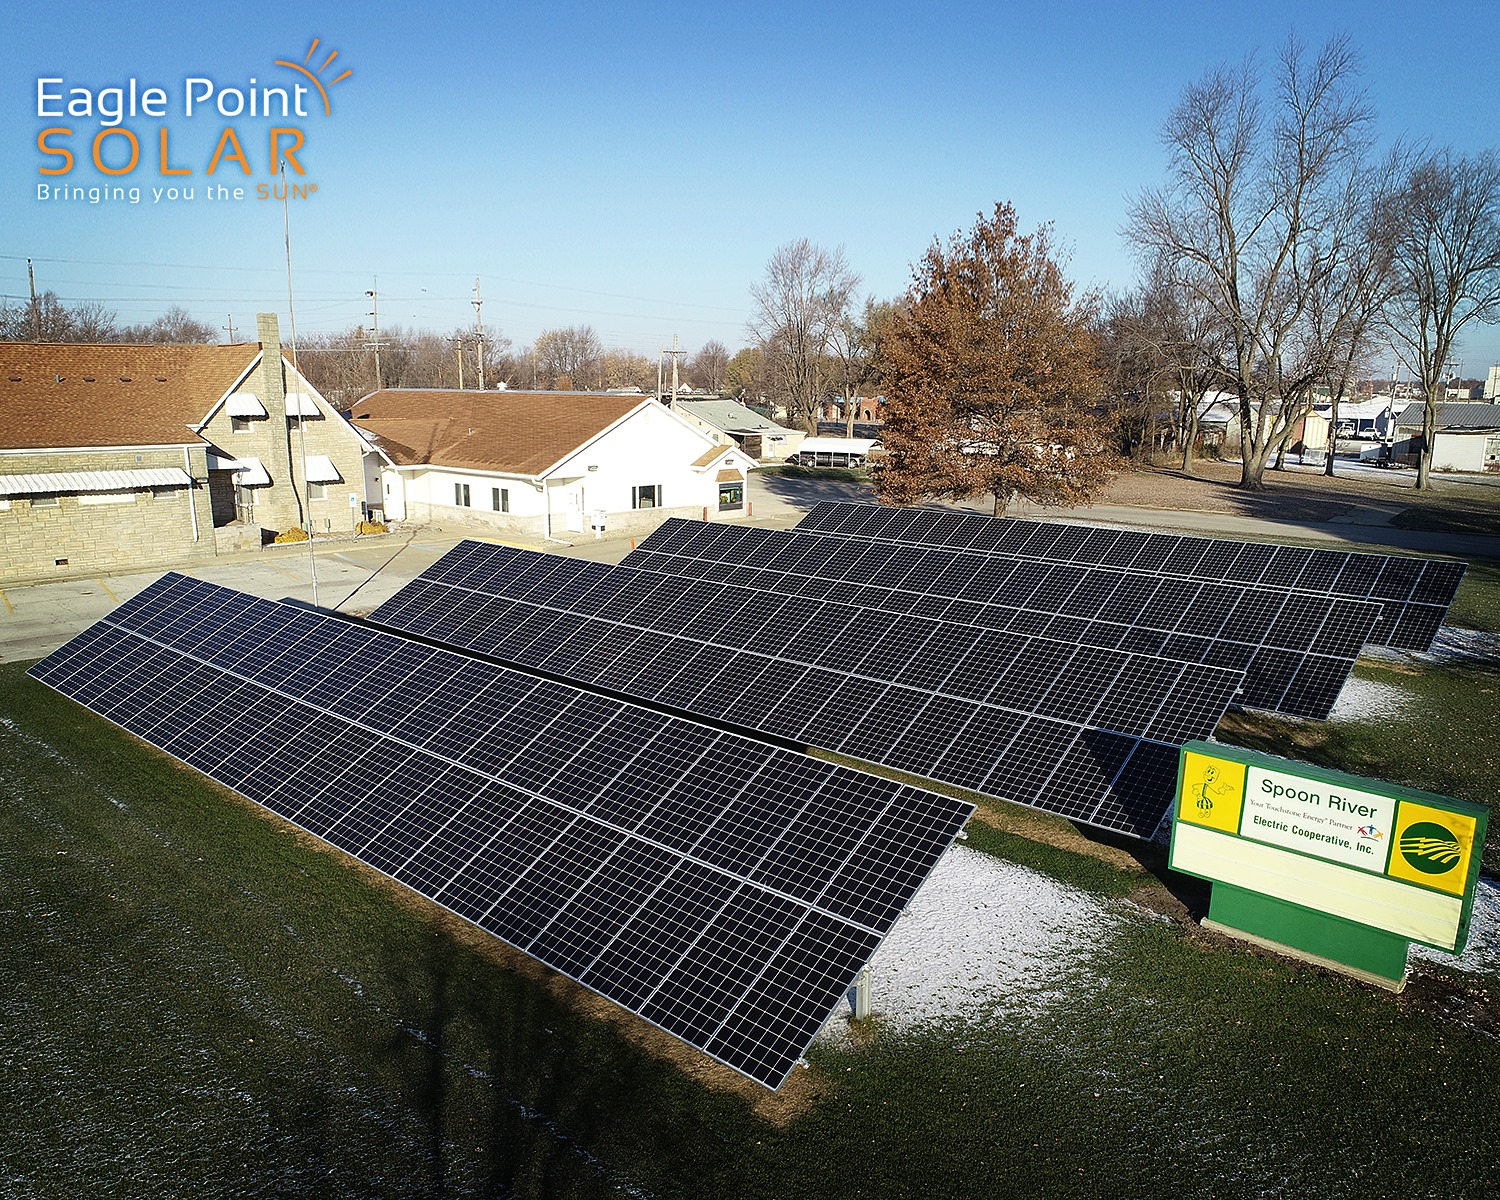 Photo of ground mounted solar array for Spoon River Utility